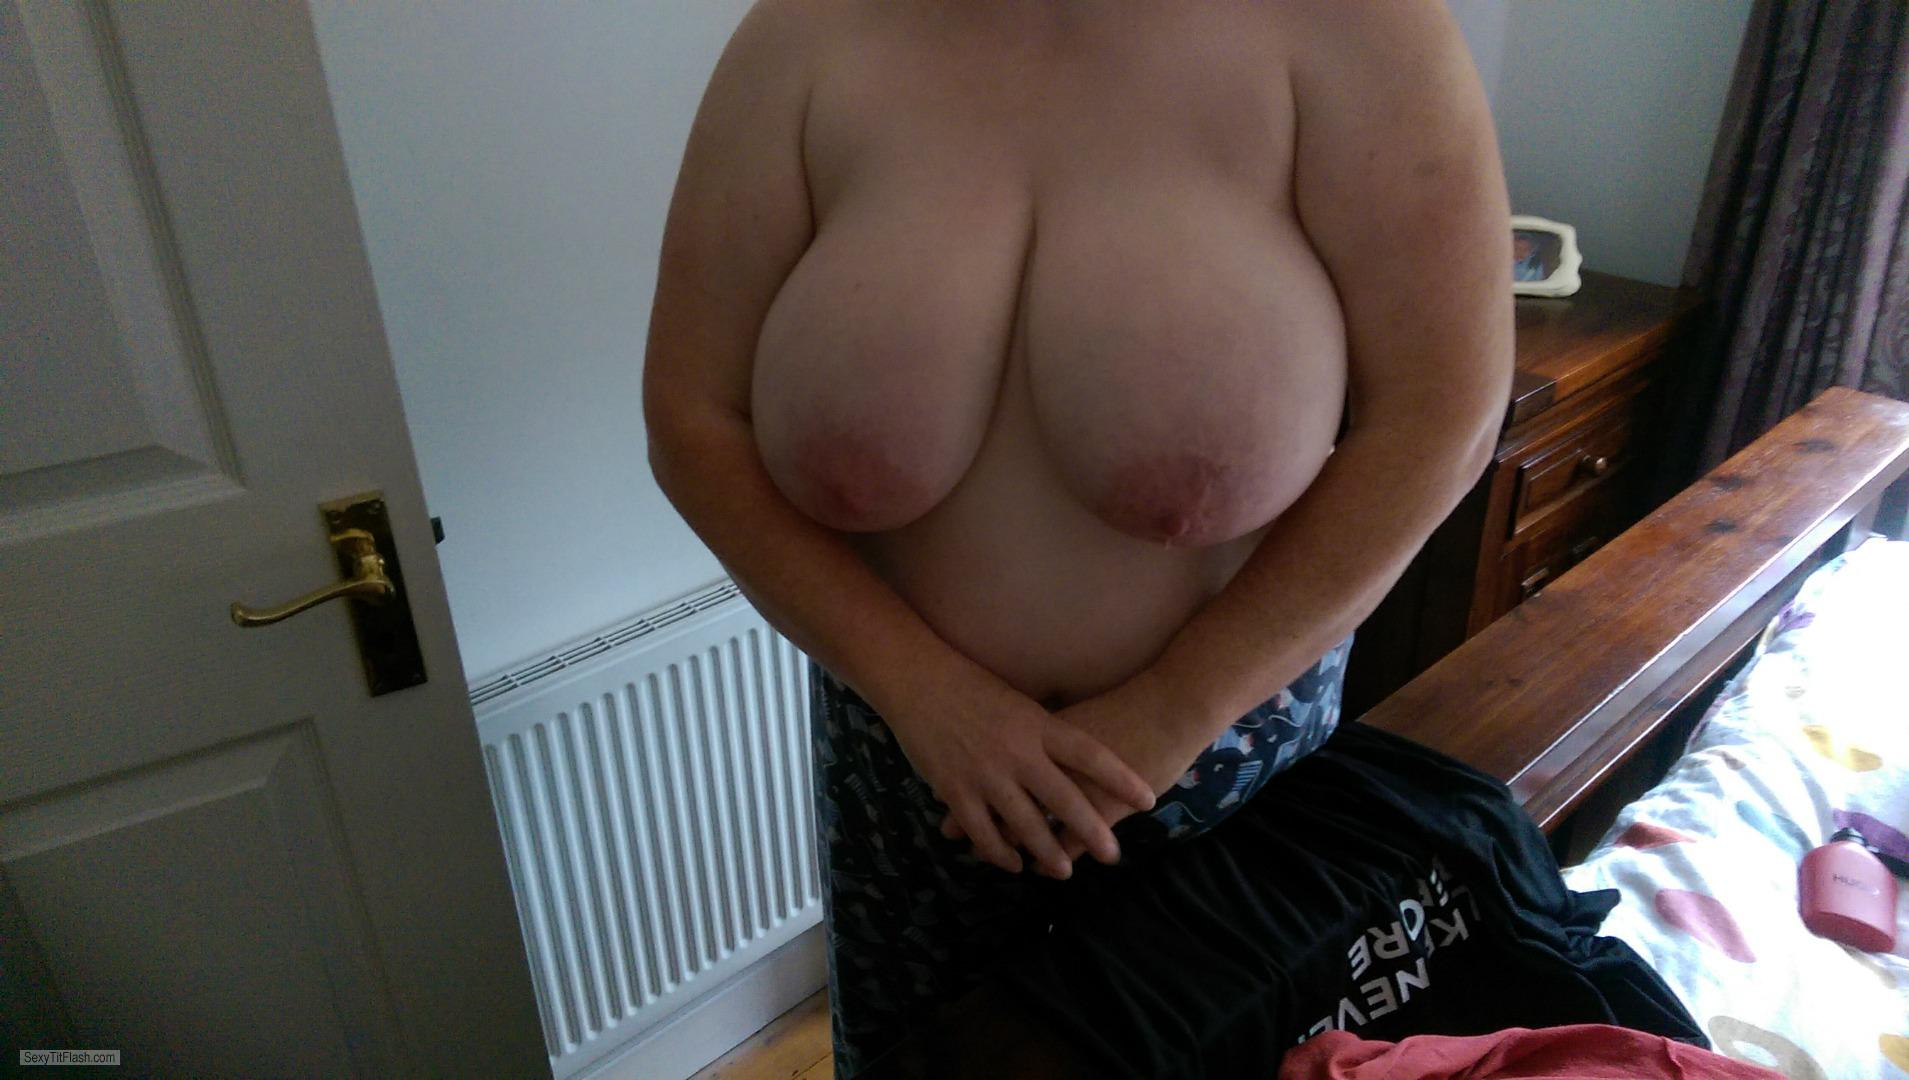 Tit Flash: Wife's Very Big Tits - Dubein from Ireland